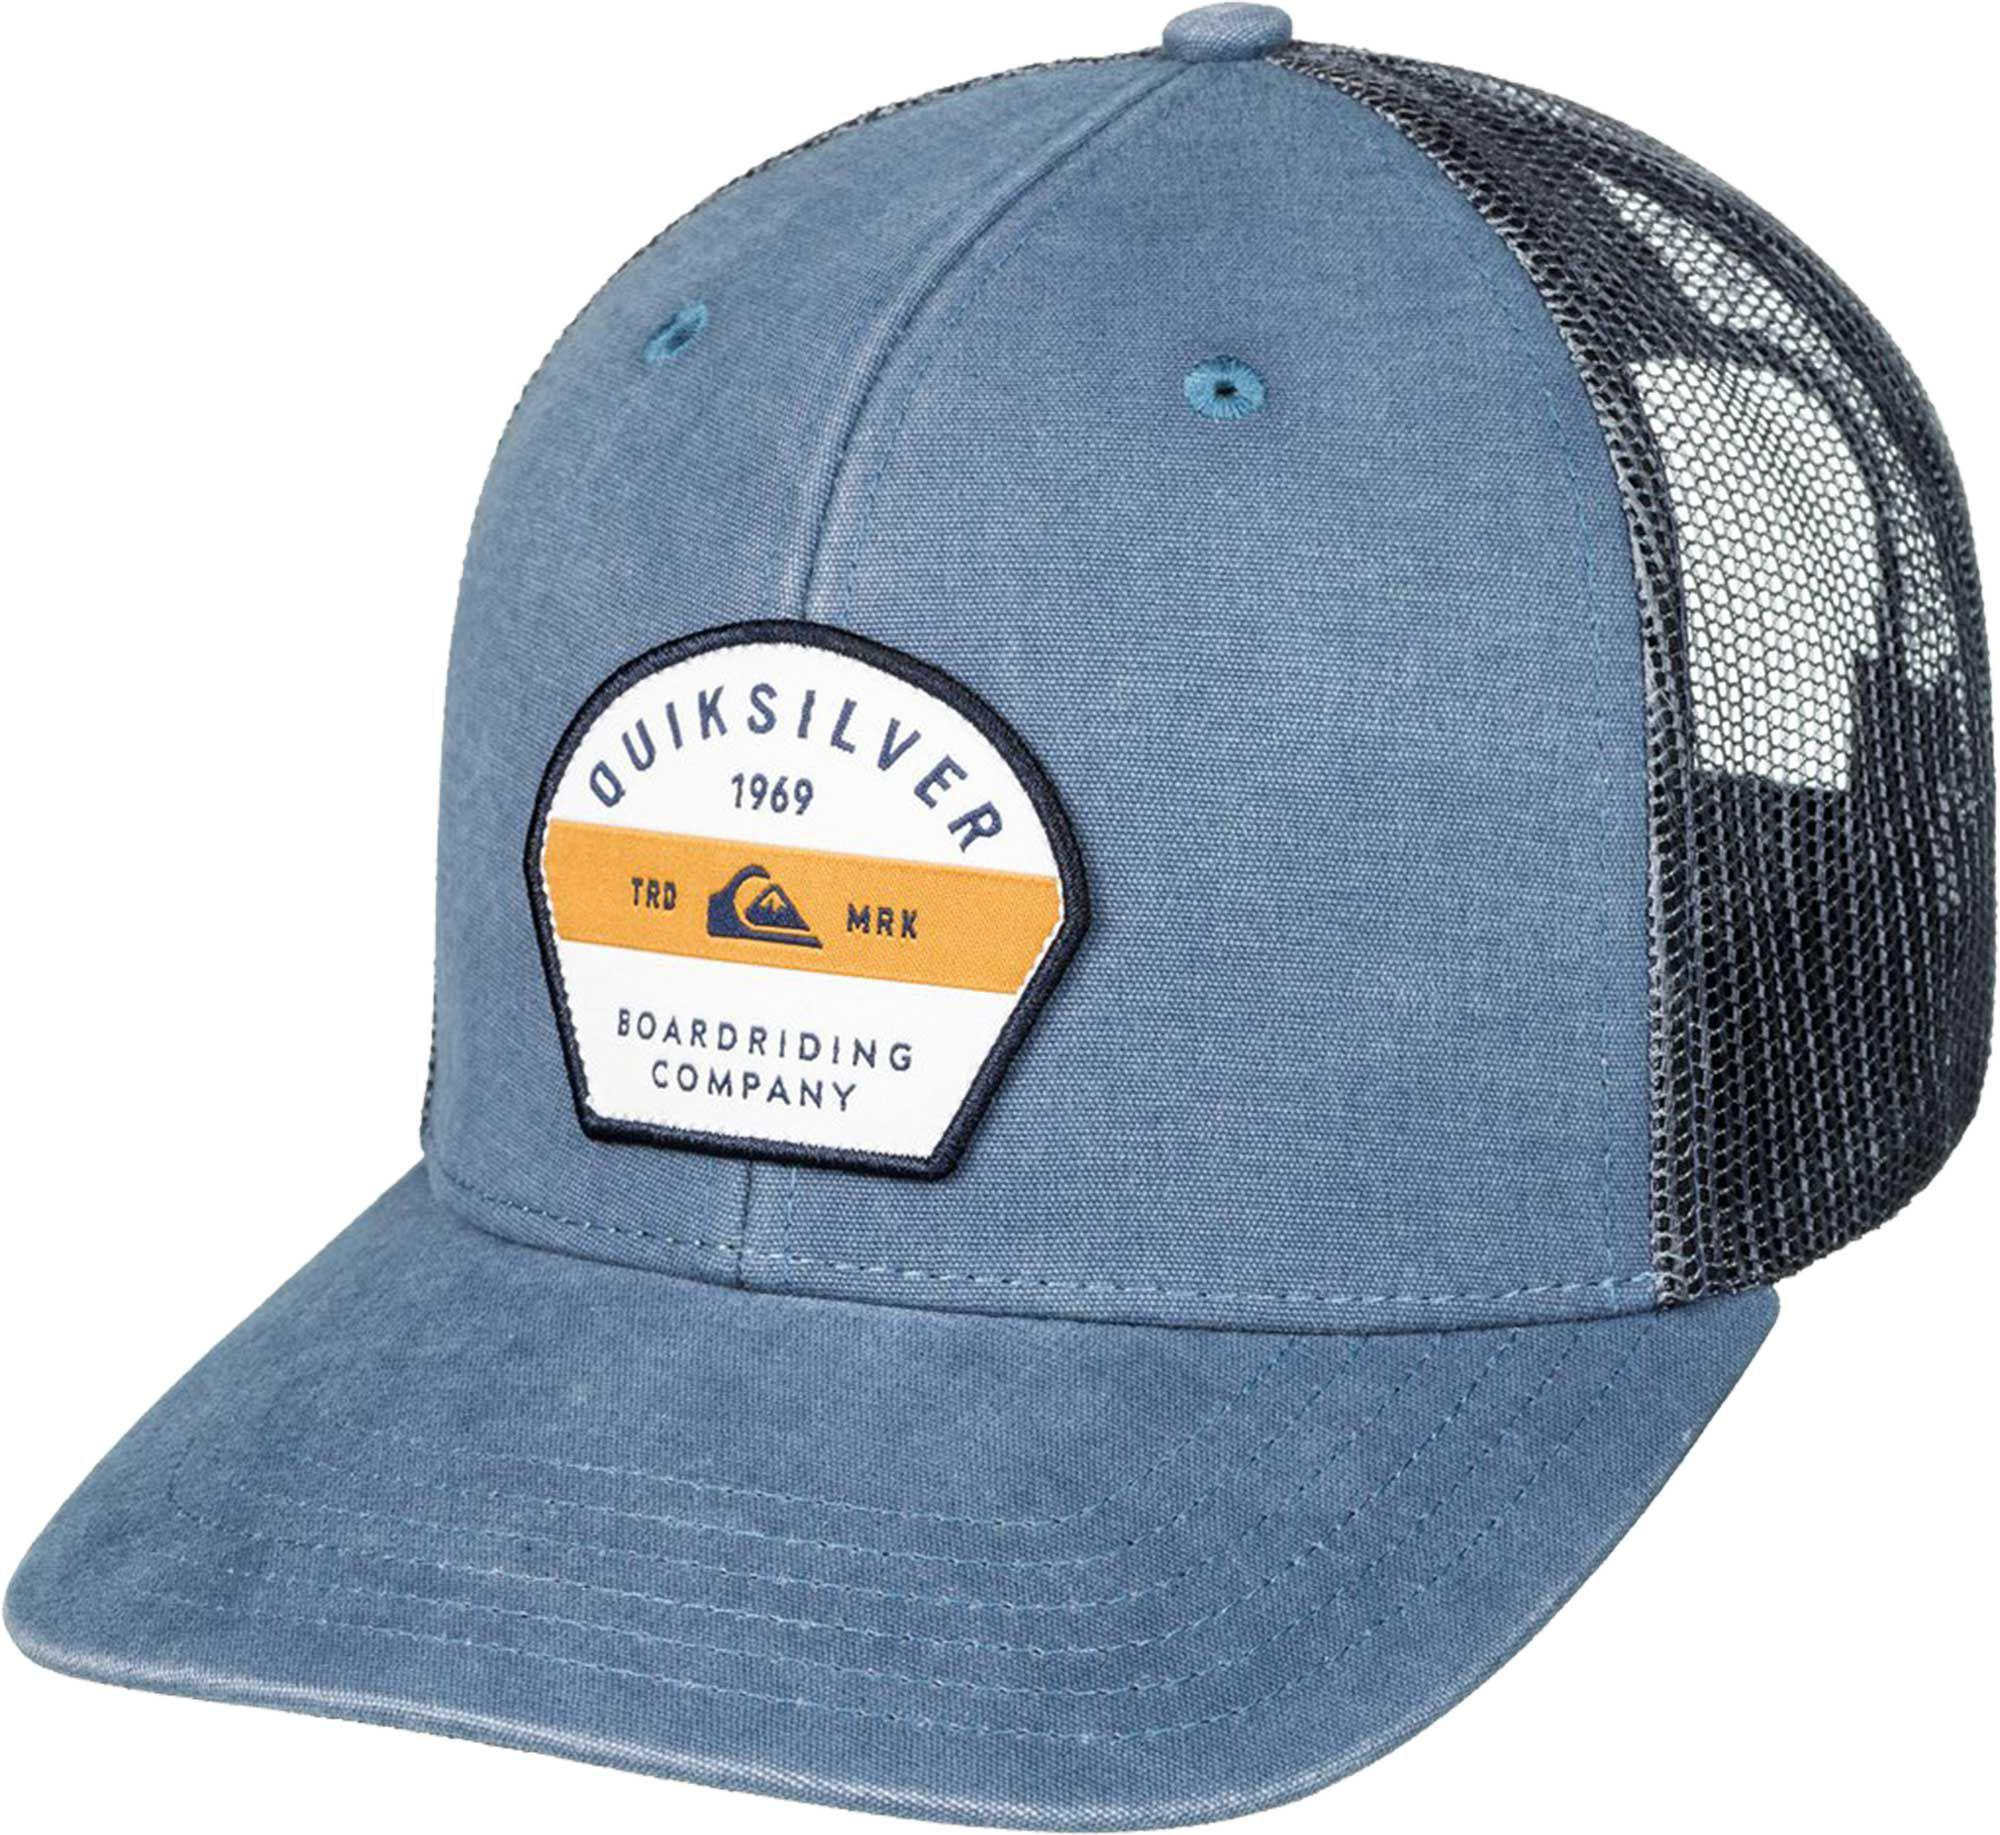 Lyst - Quiksilver Quicksilver Silver Lining Trucker Hat in Blue for Men 43b9bf3ca90